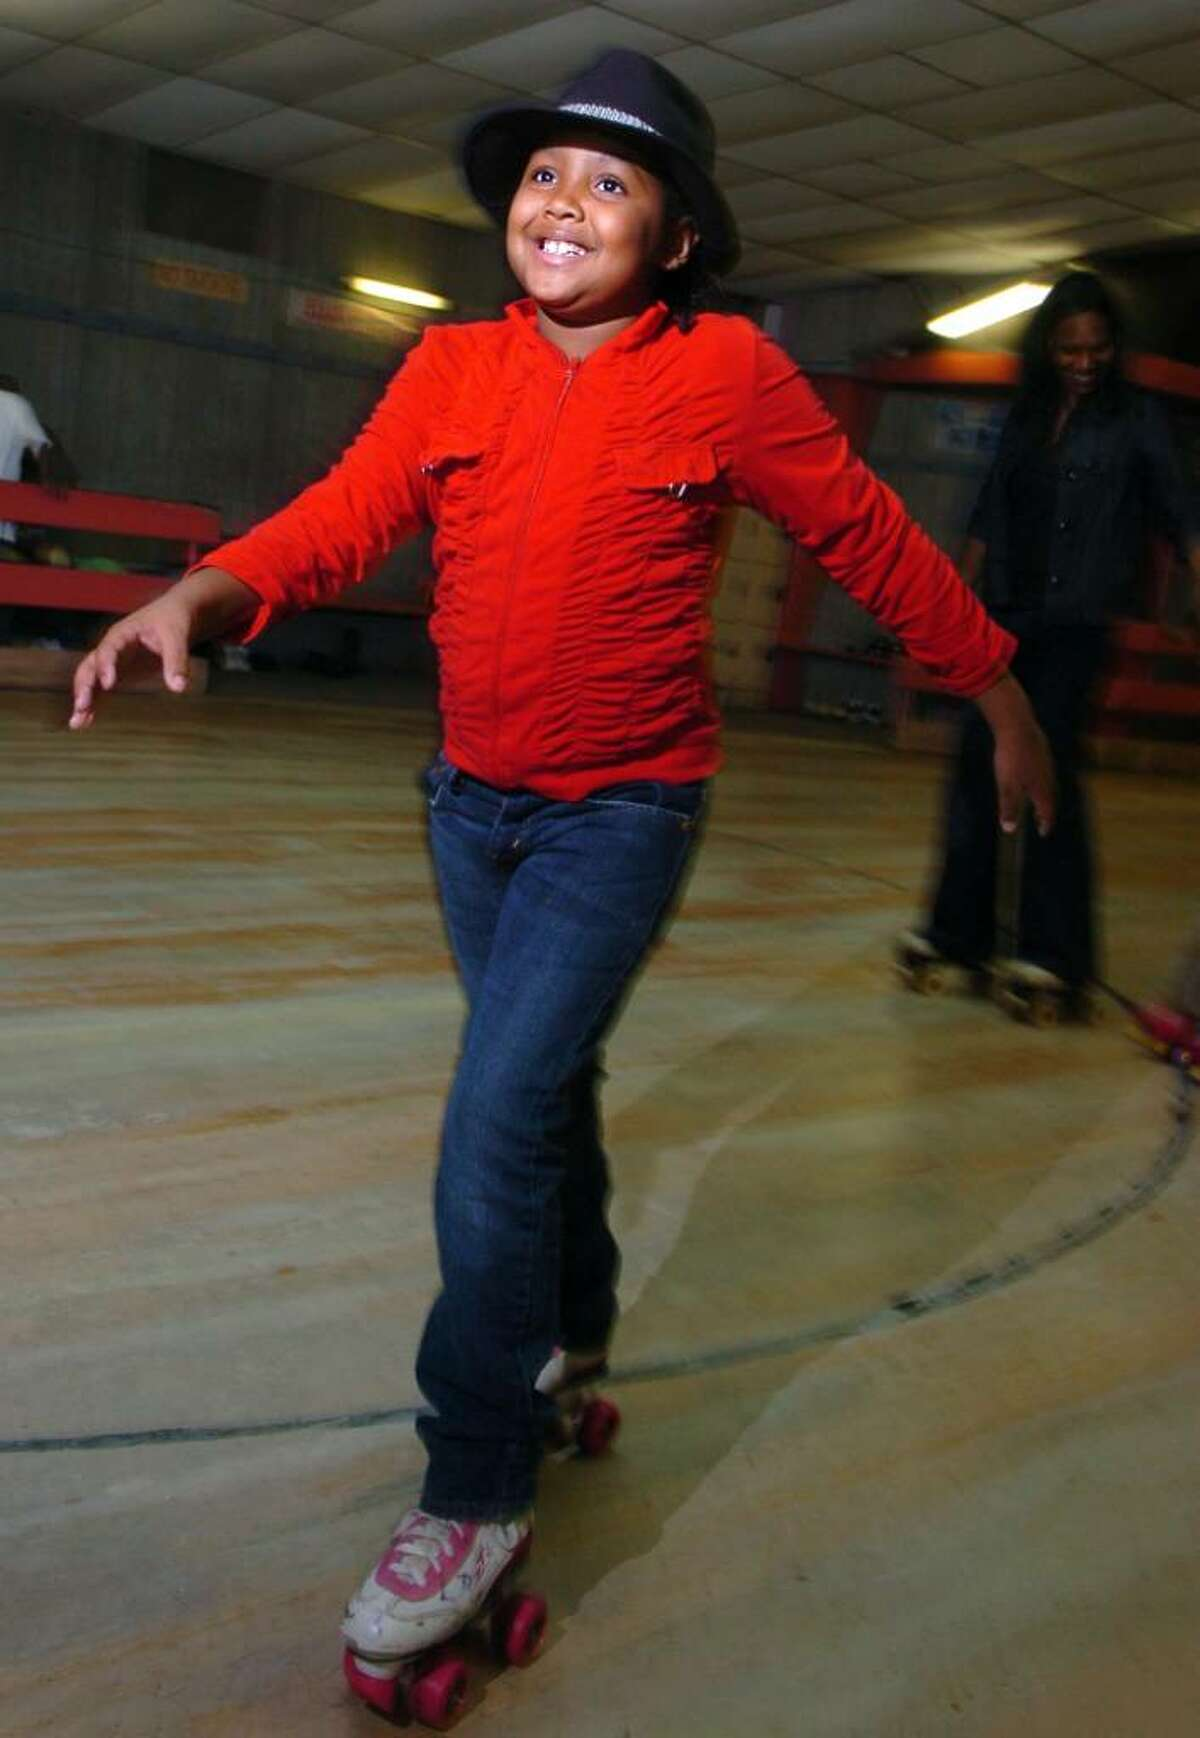 Eight-year-old Talia McBride, of Bridgeport, wears her Michael Jackson hat as she roller skates during